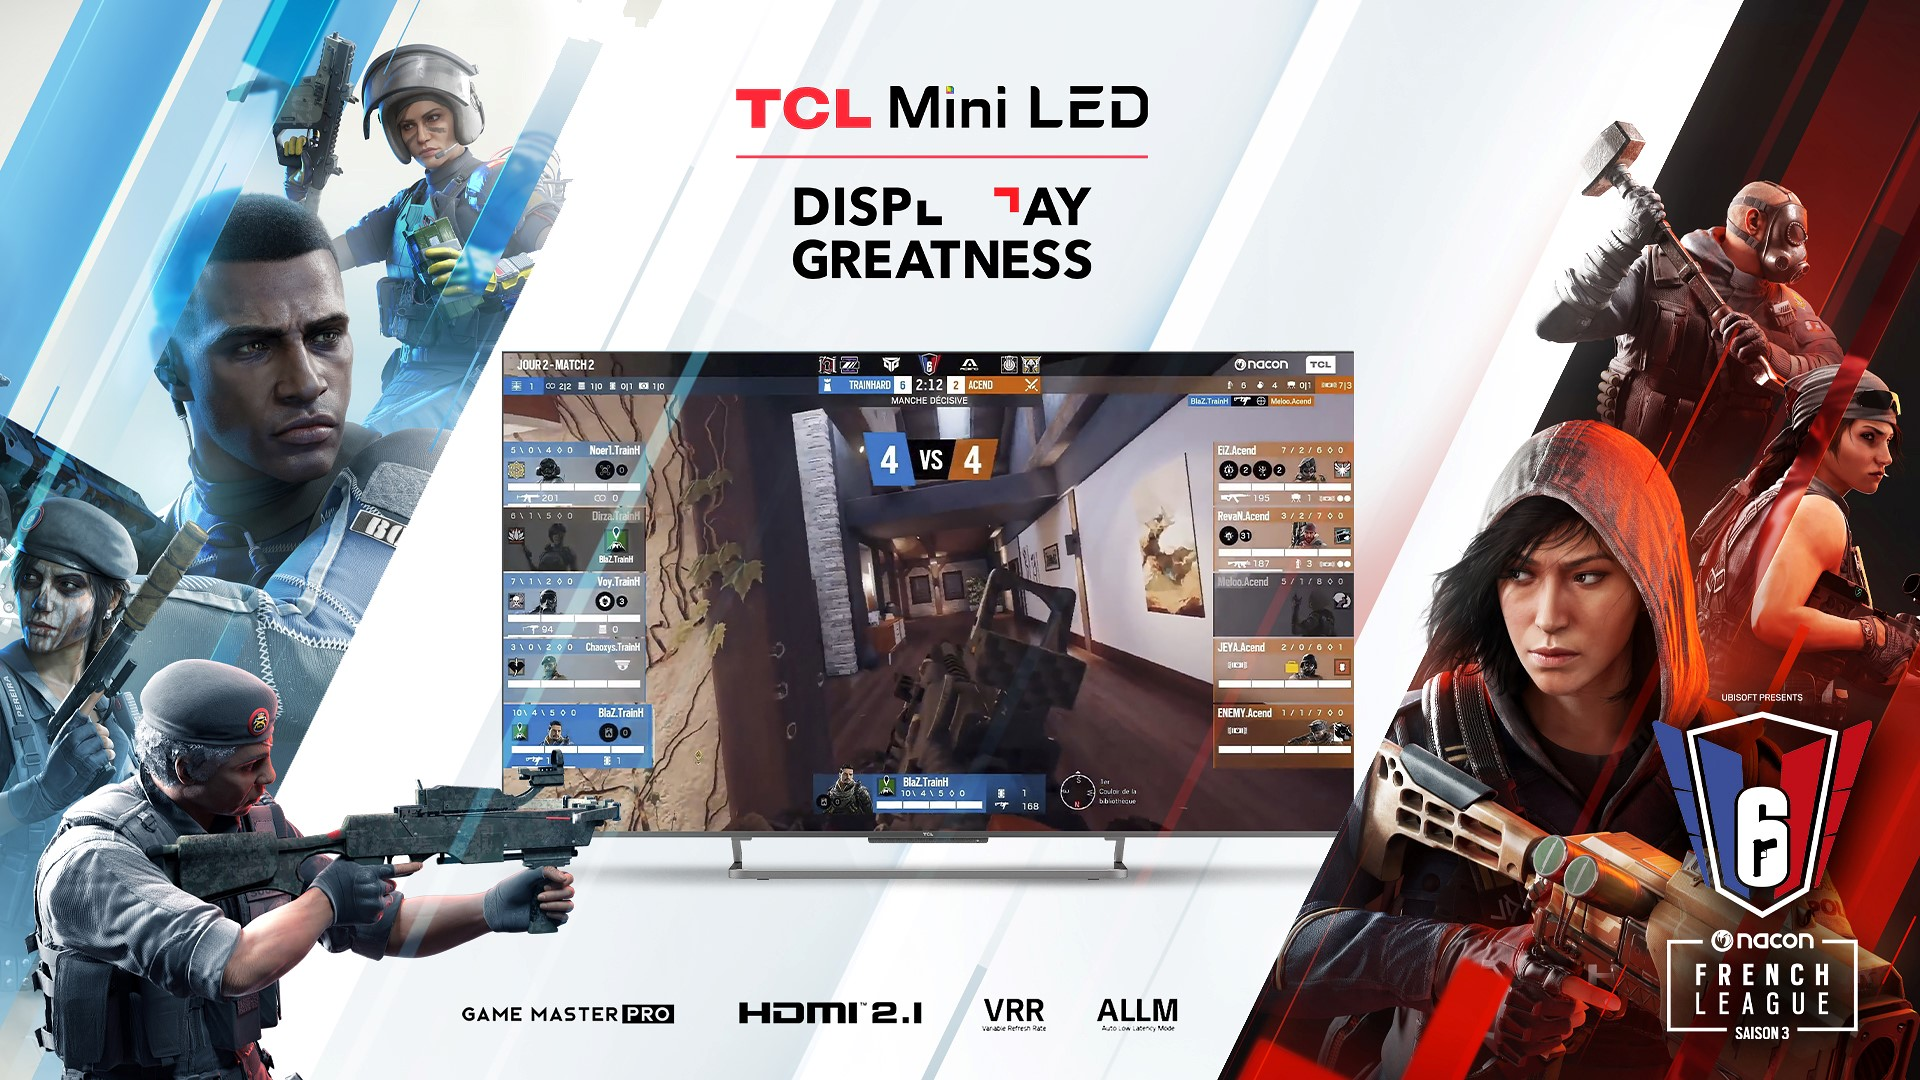 concours-r6-tcl-breakflip-gagner-une-television-2